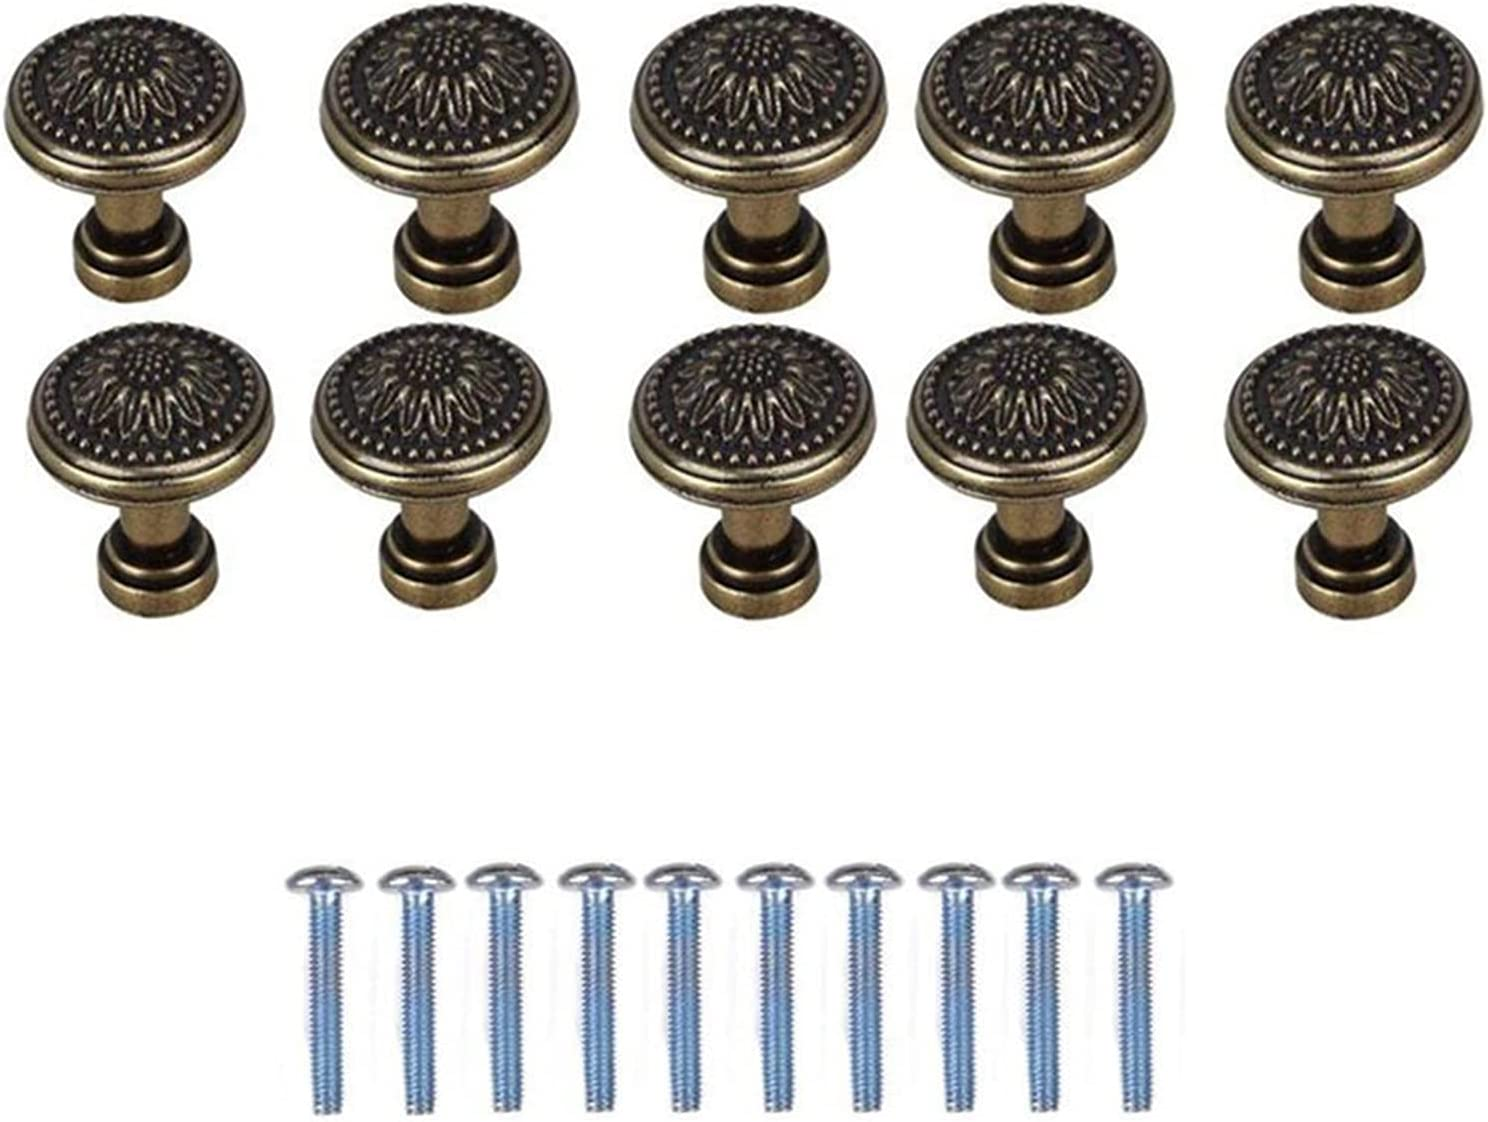 AILIUQIAN 10 Pack Oakland Mall Antique Bronzy Cab Cheap mail order specialty store Flower Kitchen Round Handle